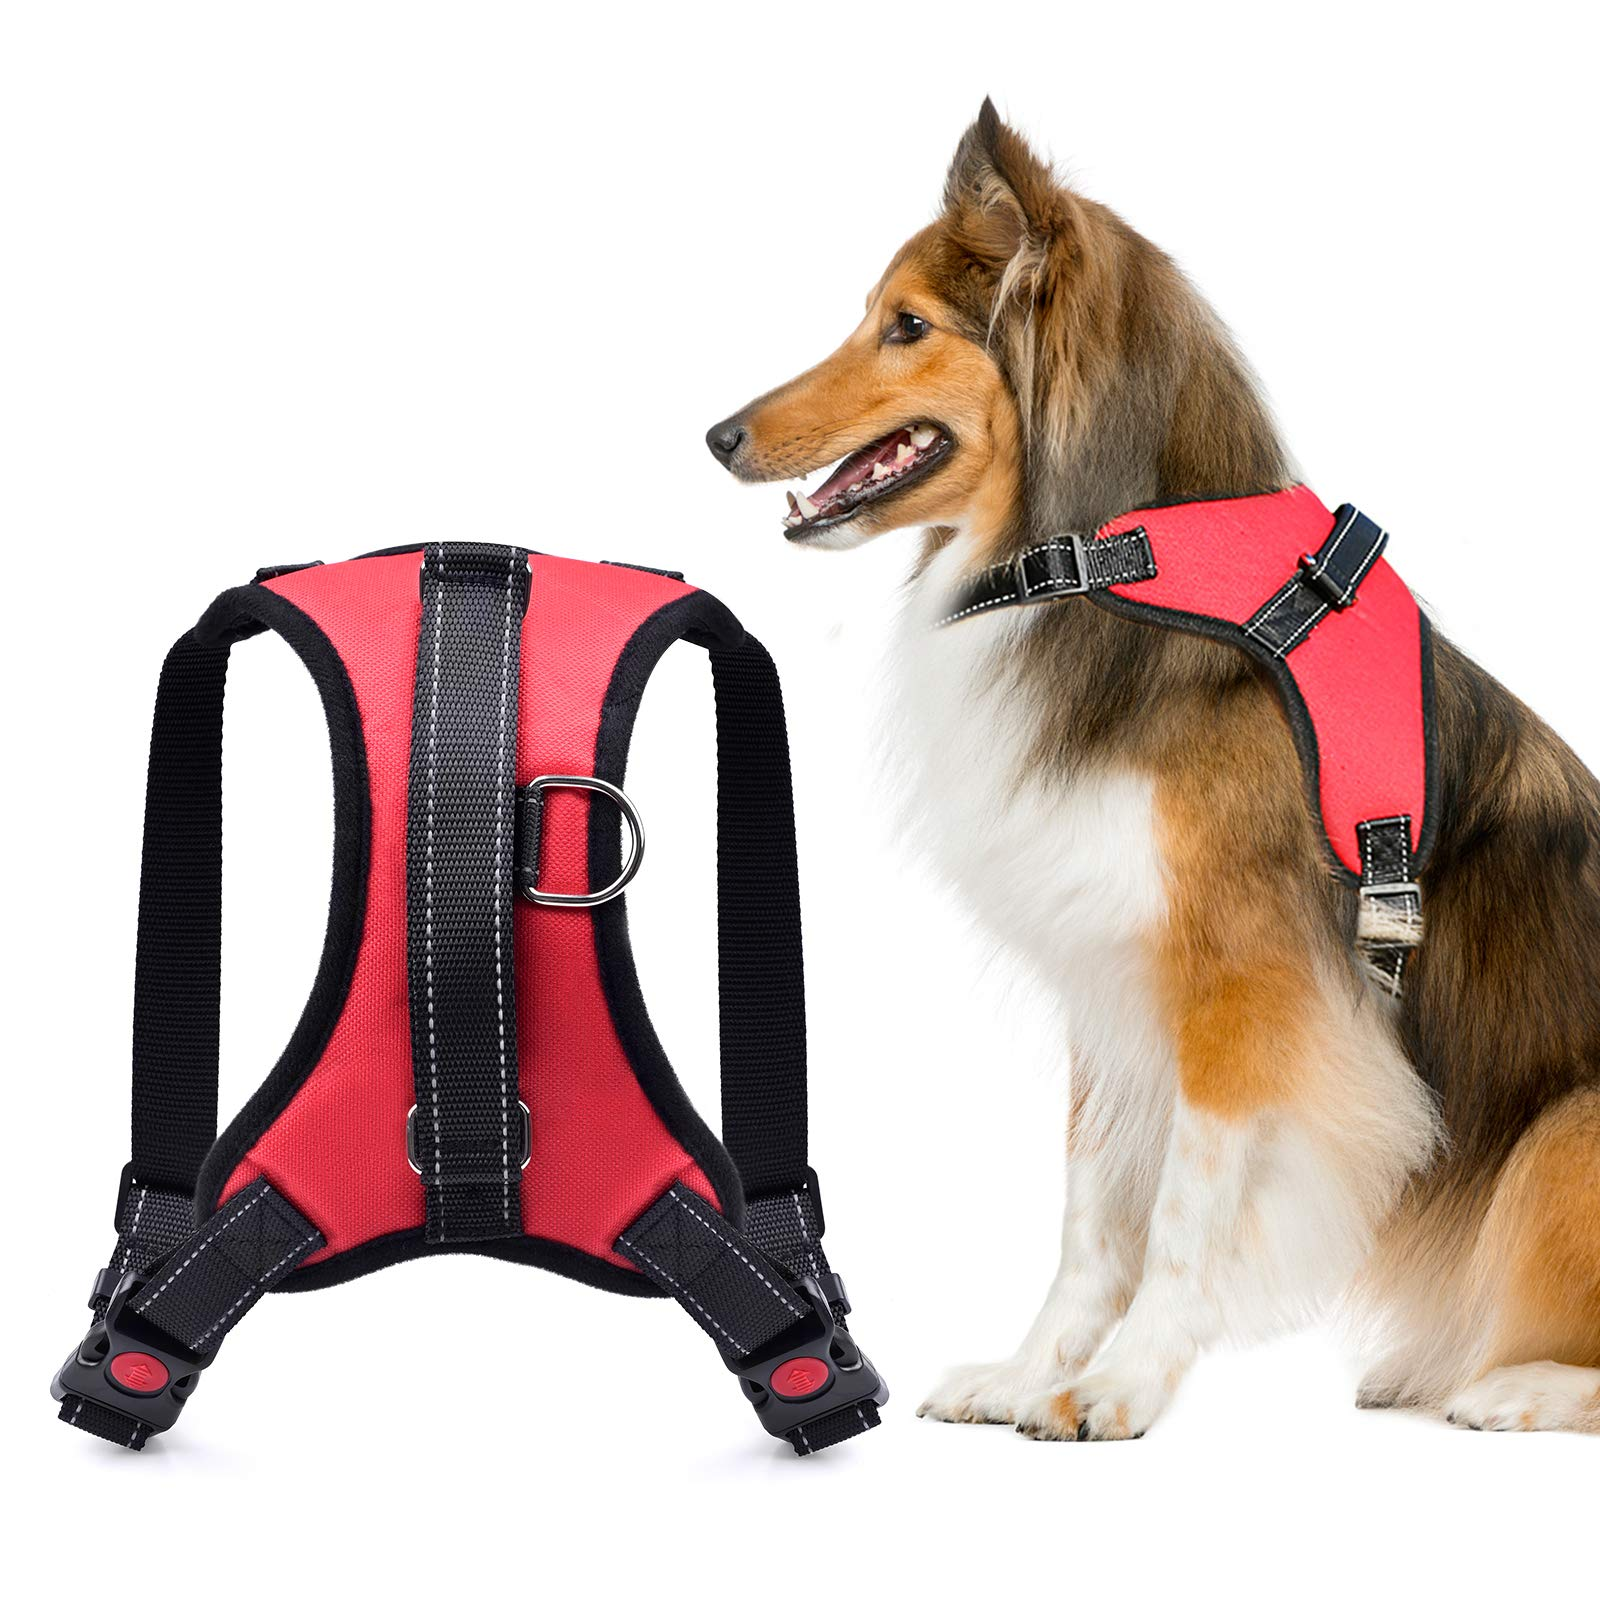 WEAVERBIRD No Pull Dog Harness, Adjustable Reflective Pet Vest Harness for Walking Training Running, Walking Pet Harness for Small/Middle /Large Dog, Red (S)